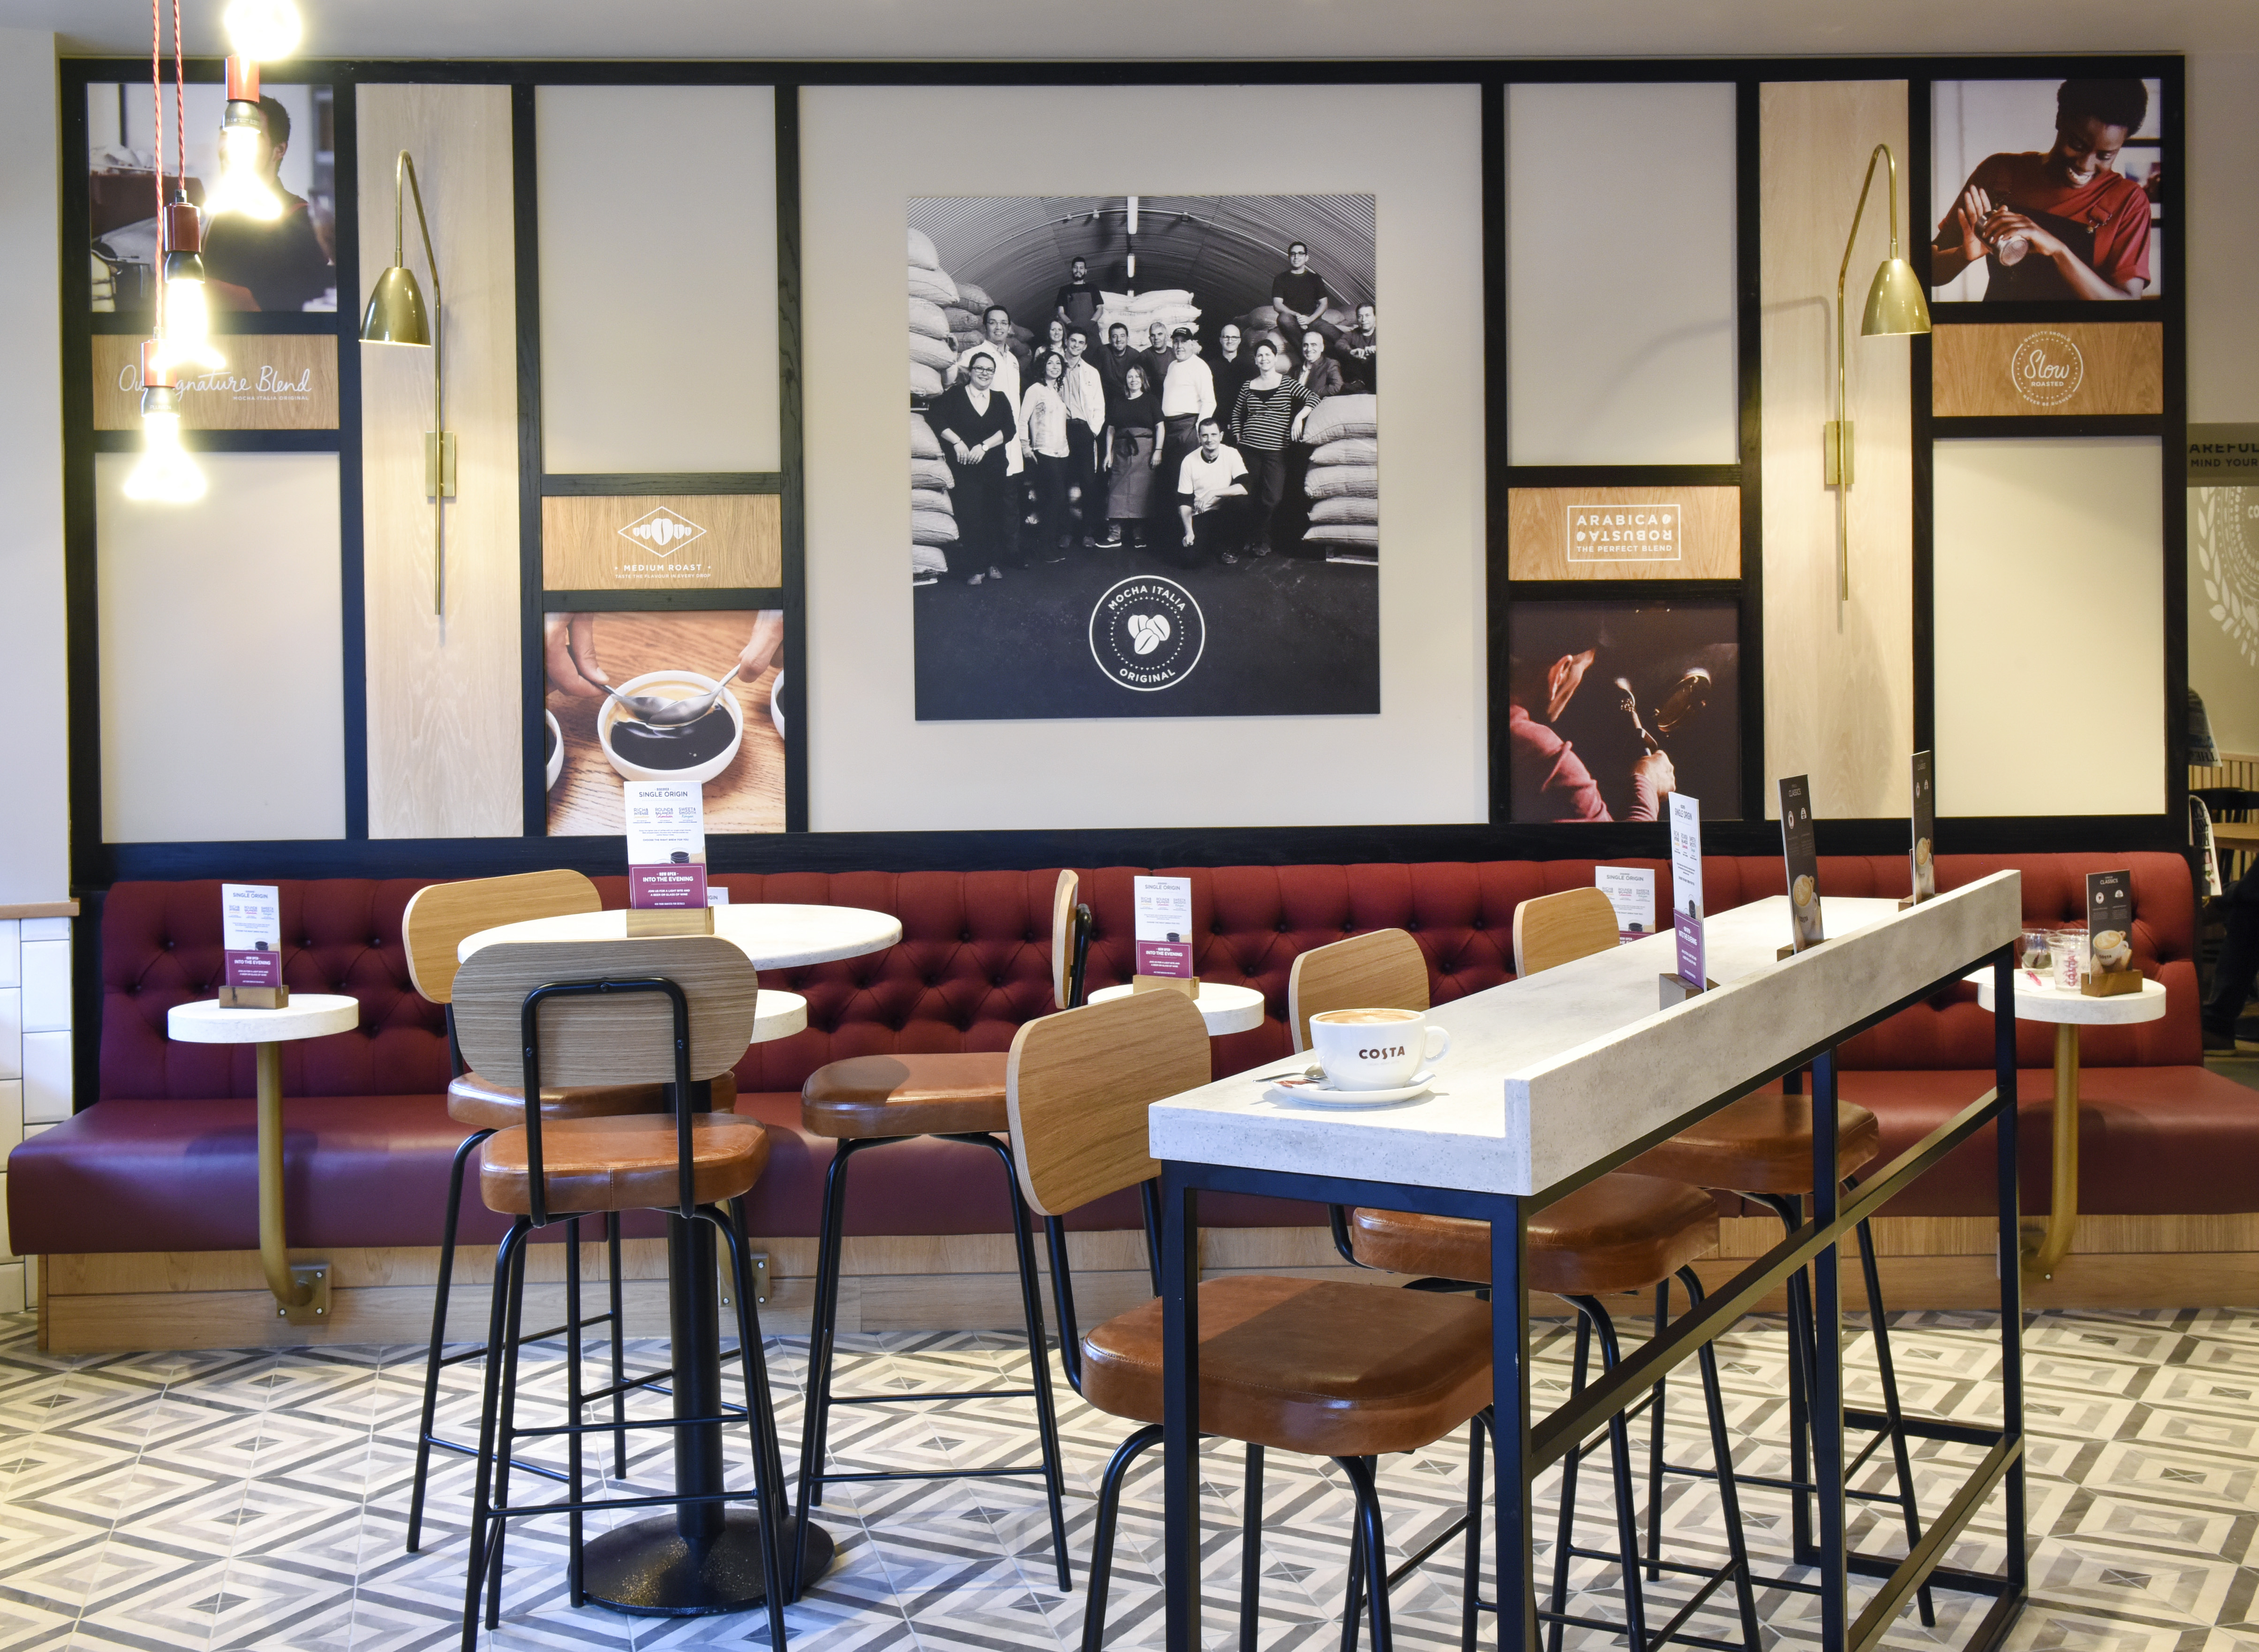 Costa Coffee Trials New Store Design Concept In London Design Week - Costa coffee table